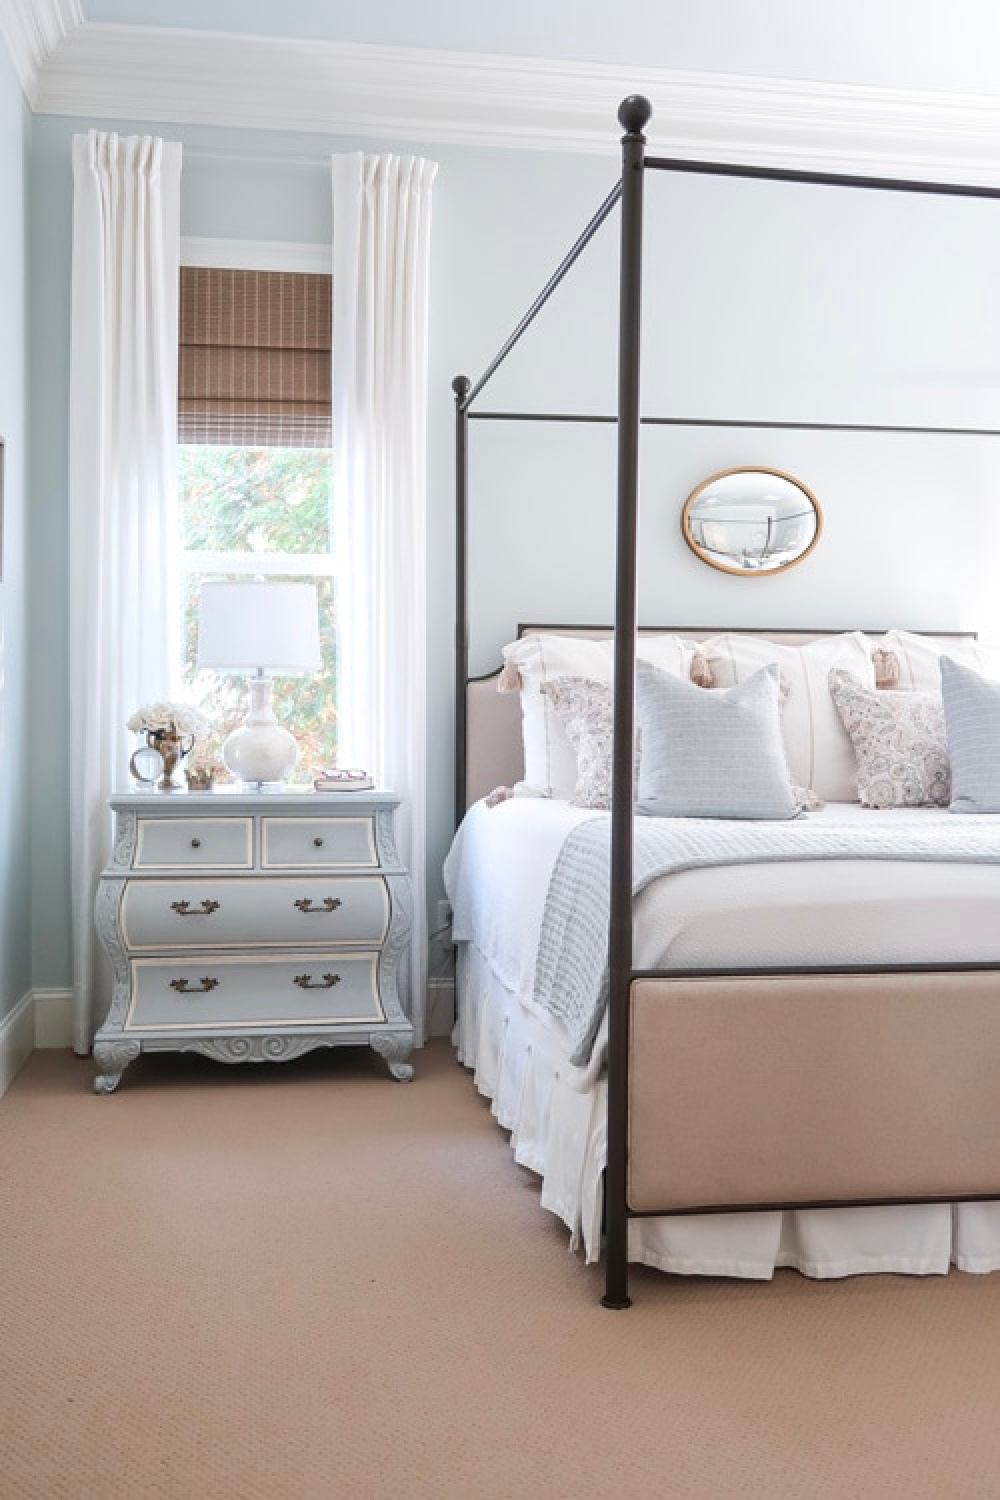 Pale blue bedroom walls painted Quiet Moments (Benjamin Moore) with poster bed and French nightstand - Porchdaydreamer. #quietmoments #benjaminmoorequietmoments #paleblue #bluebedroom